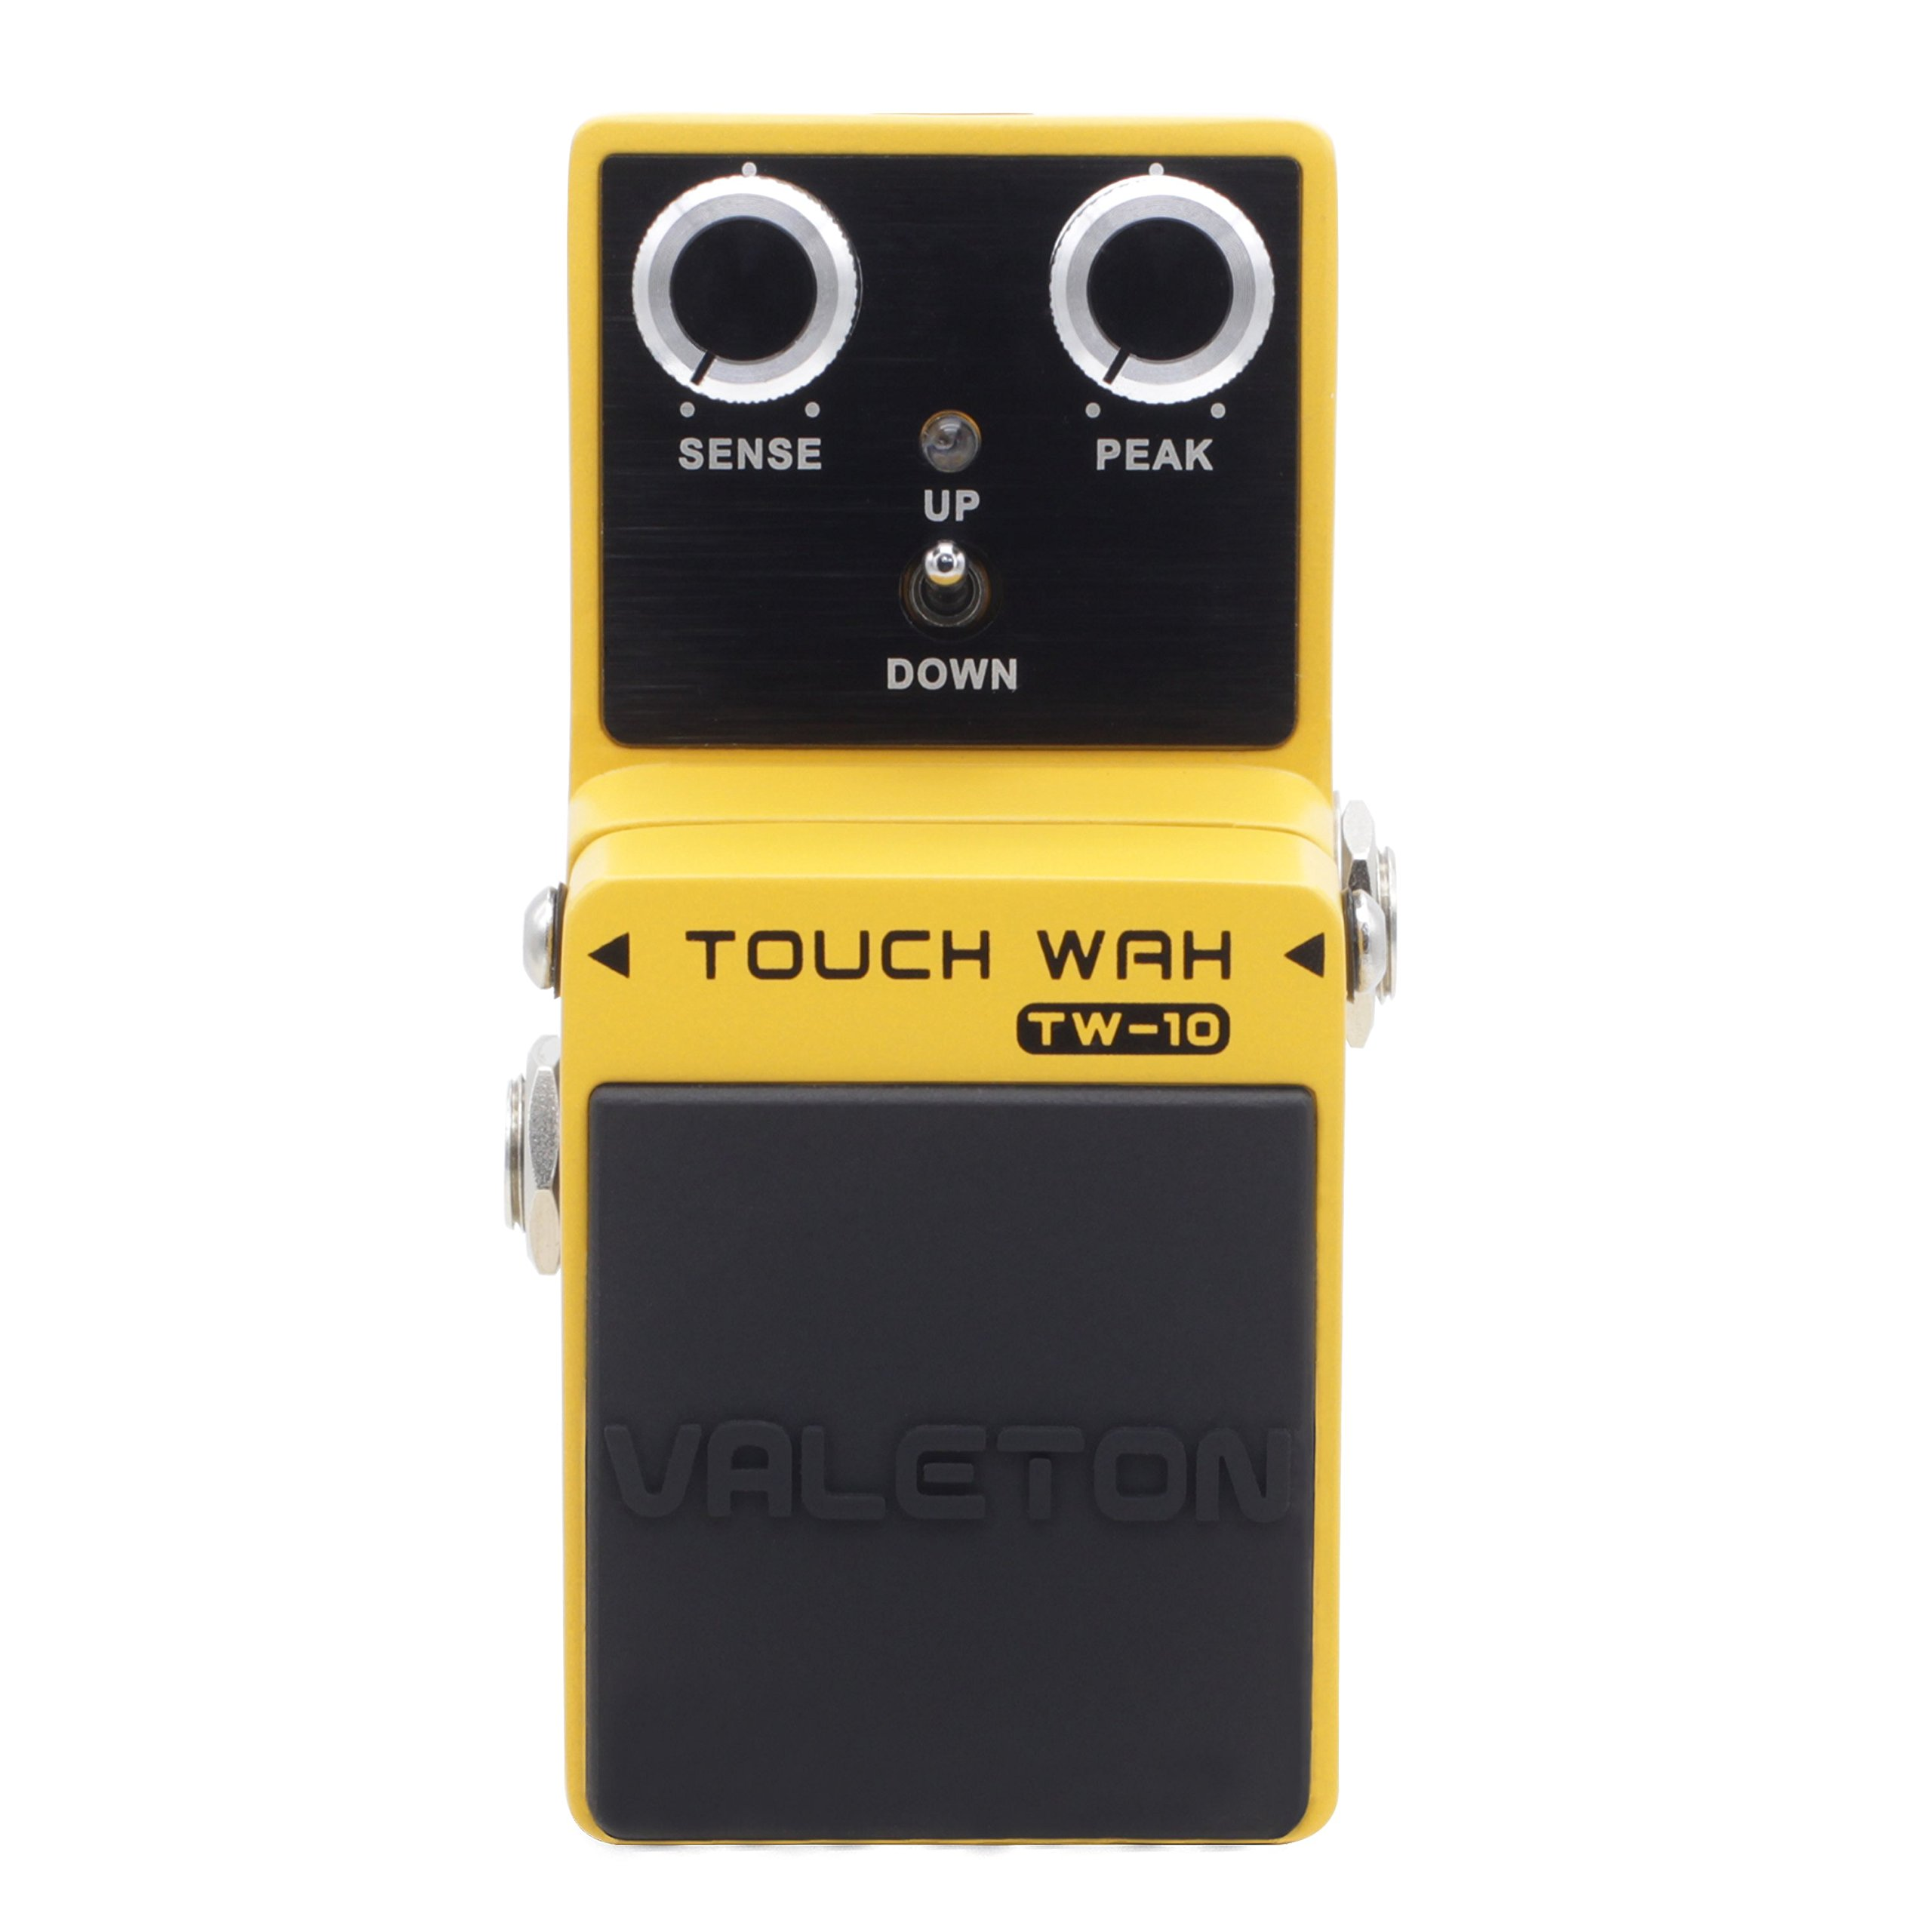 Valeton Touch Wah Mini Wah Pedal Guitar Effect Pedal Buffer Bypass Zinc-alloy Die Cast Casing by Valeton